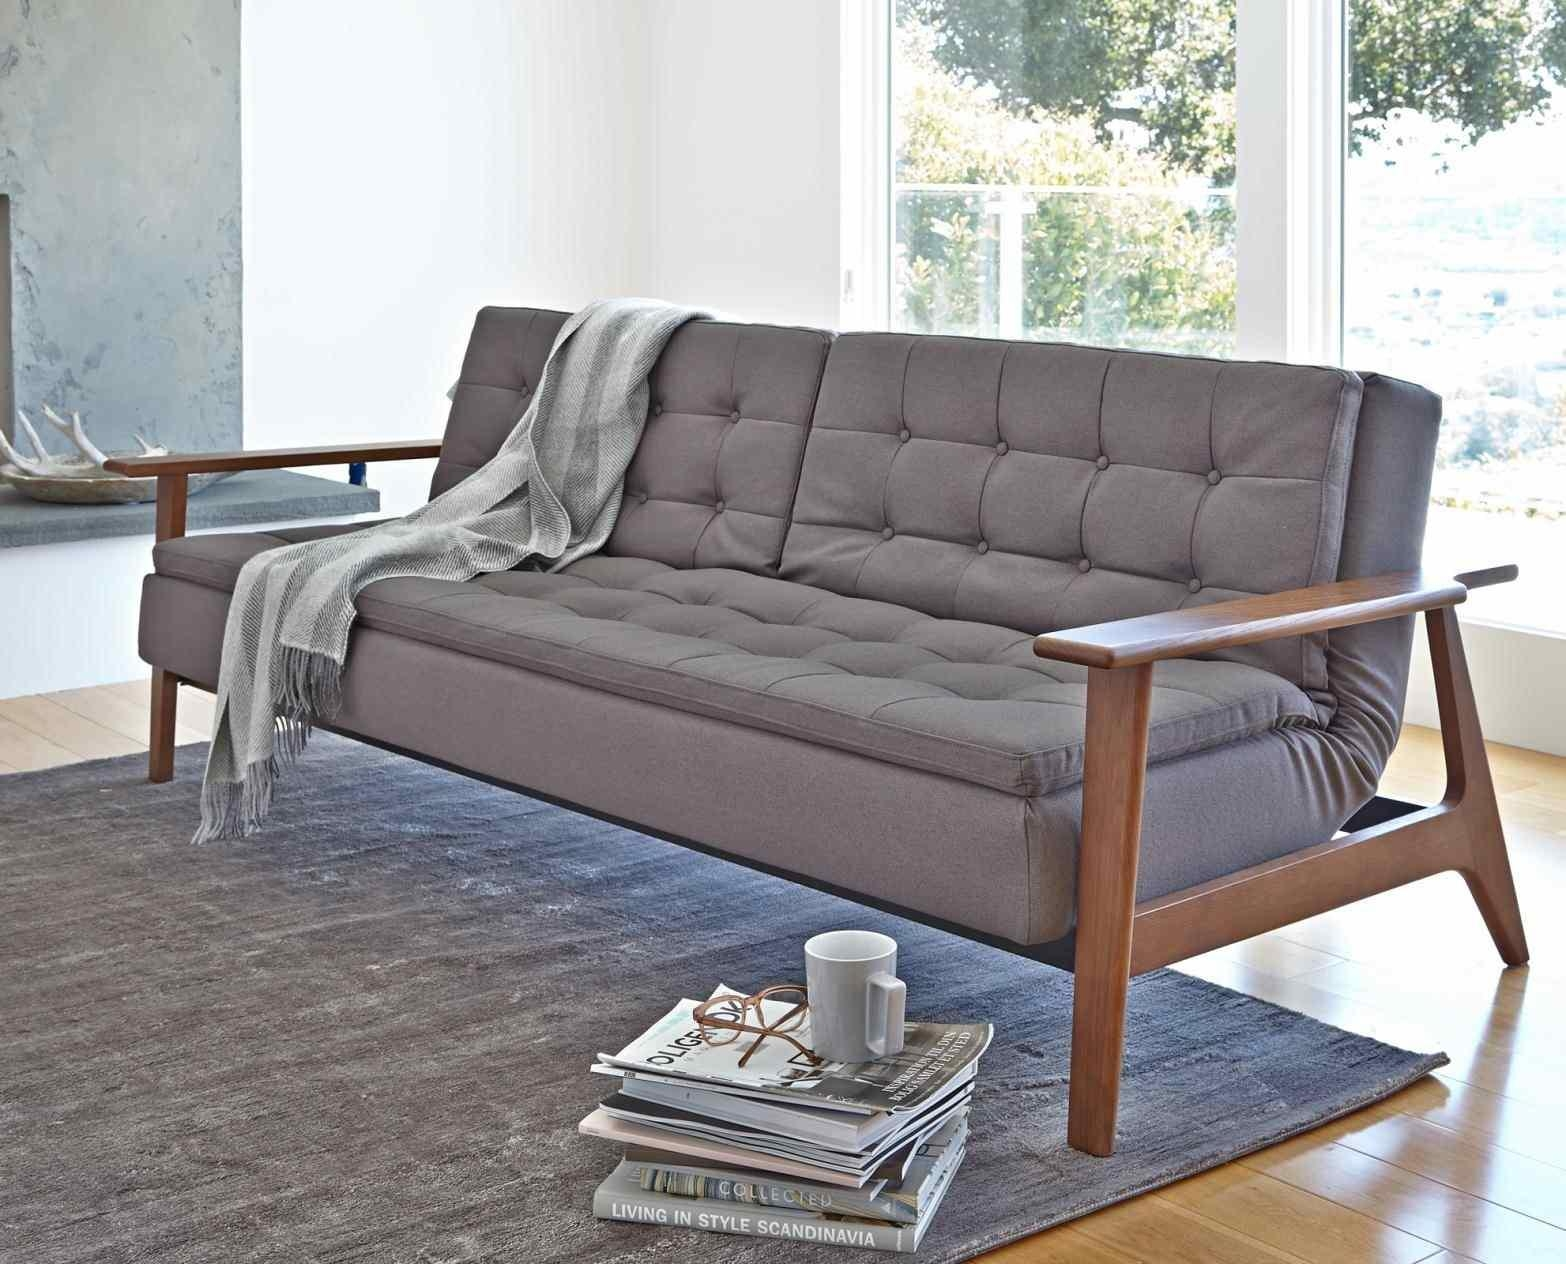 Cheap throws for sofas Discount sofa loveseat